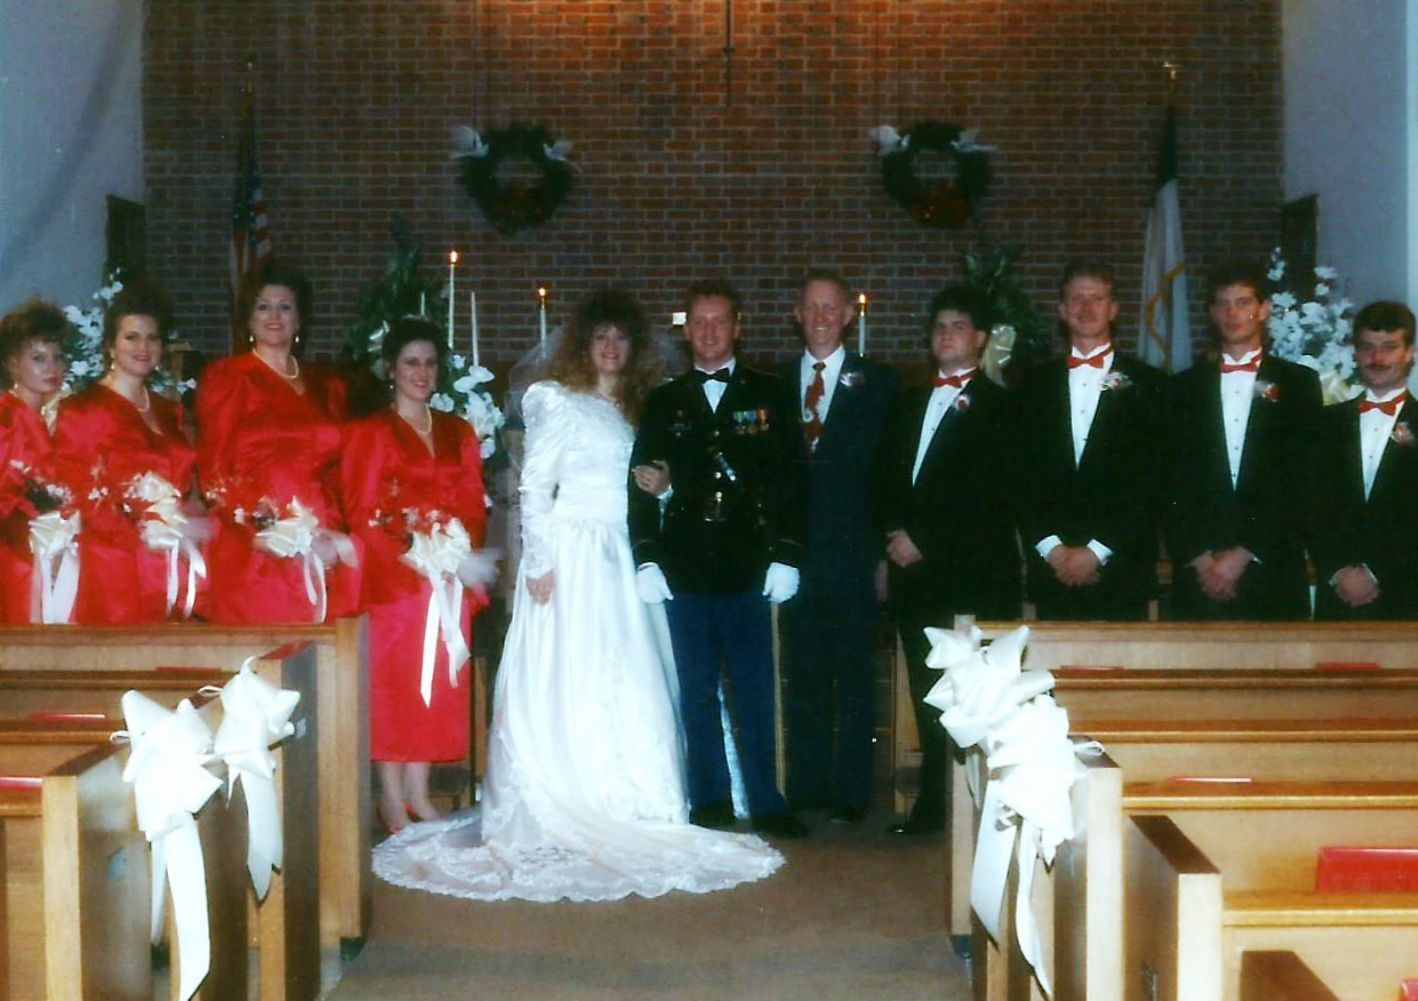 Larry and Michelle Jester wedding pictures i4aa